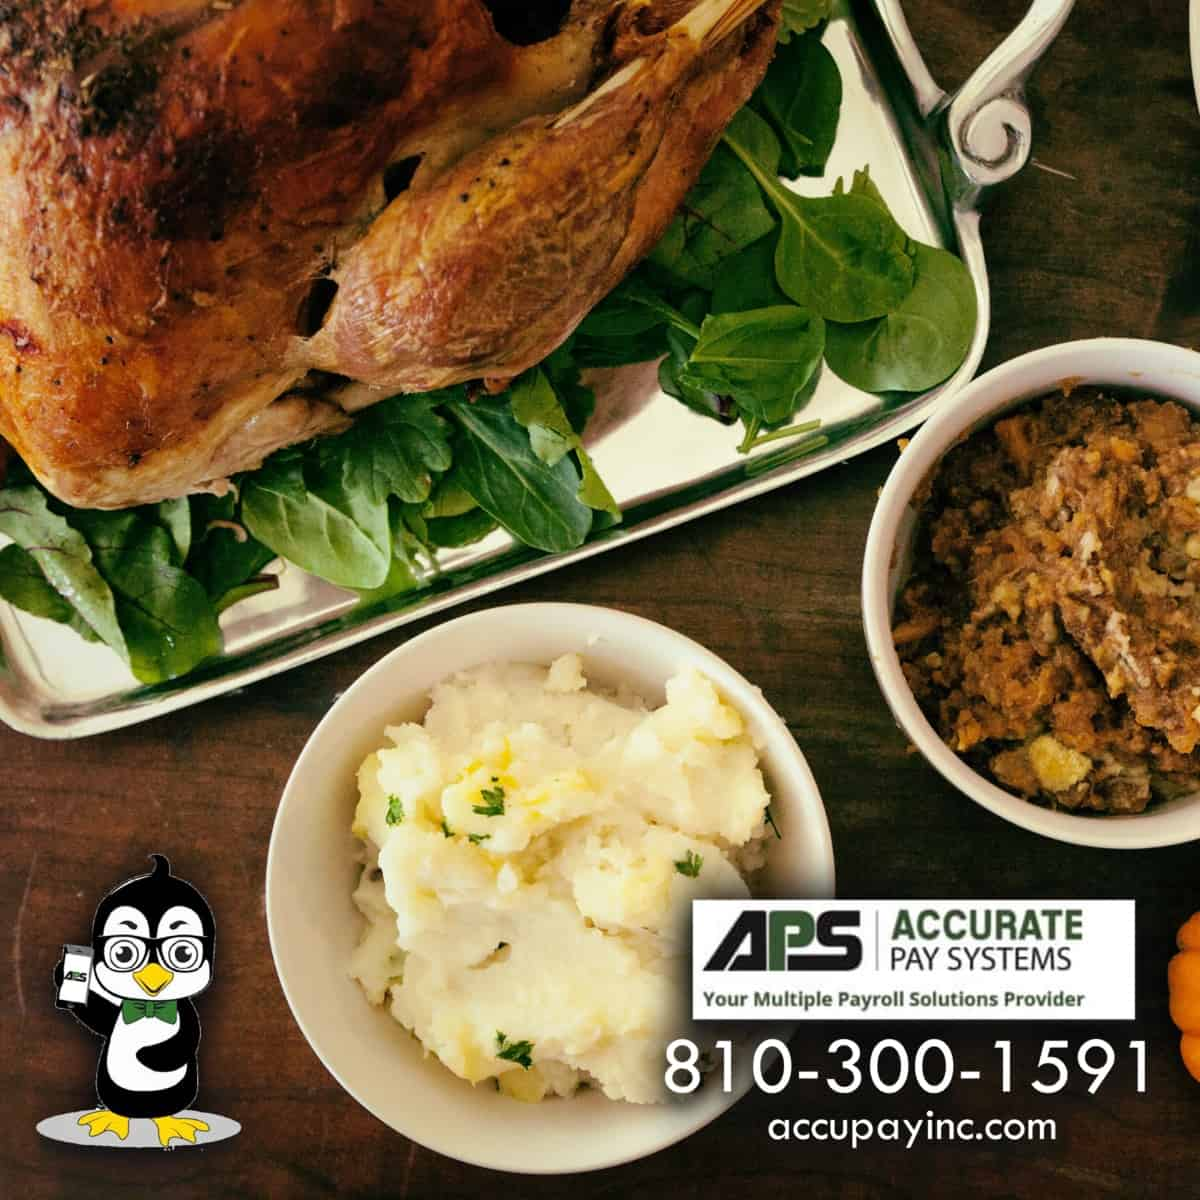 Thanksgiving Dinner with Accurate Pay Systems Logos